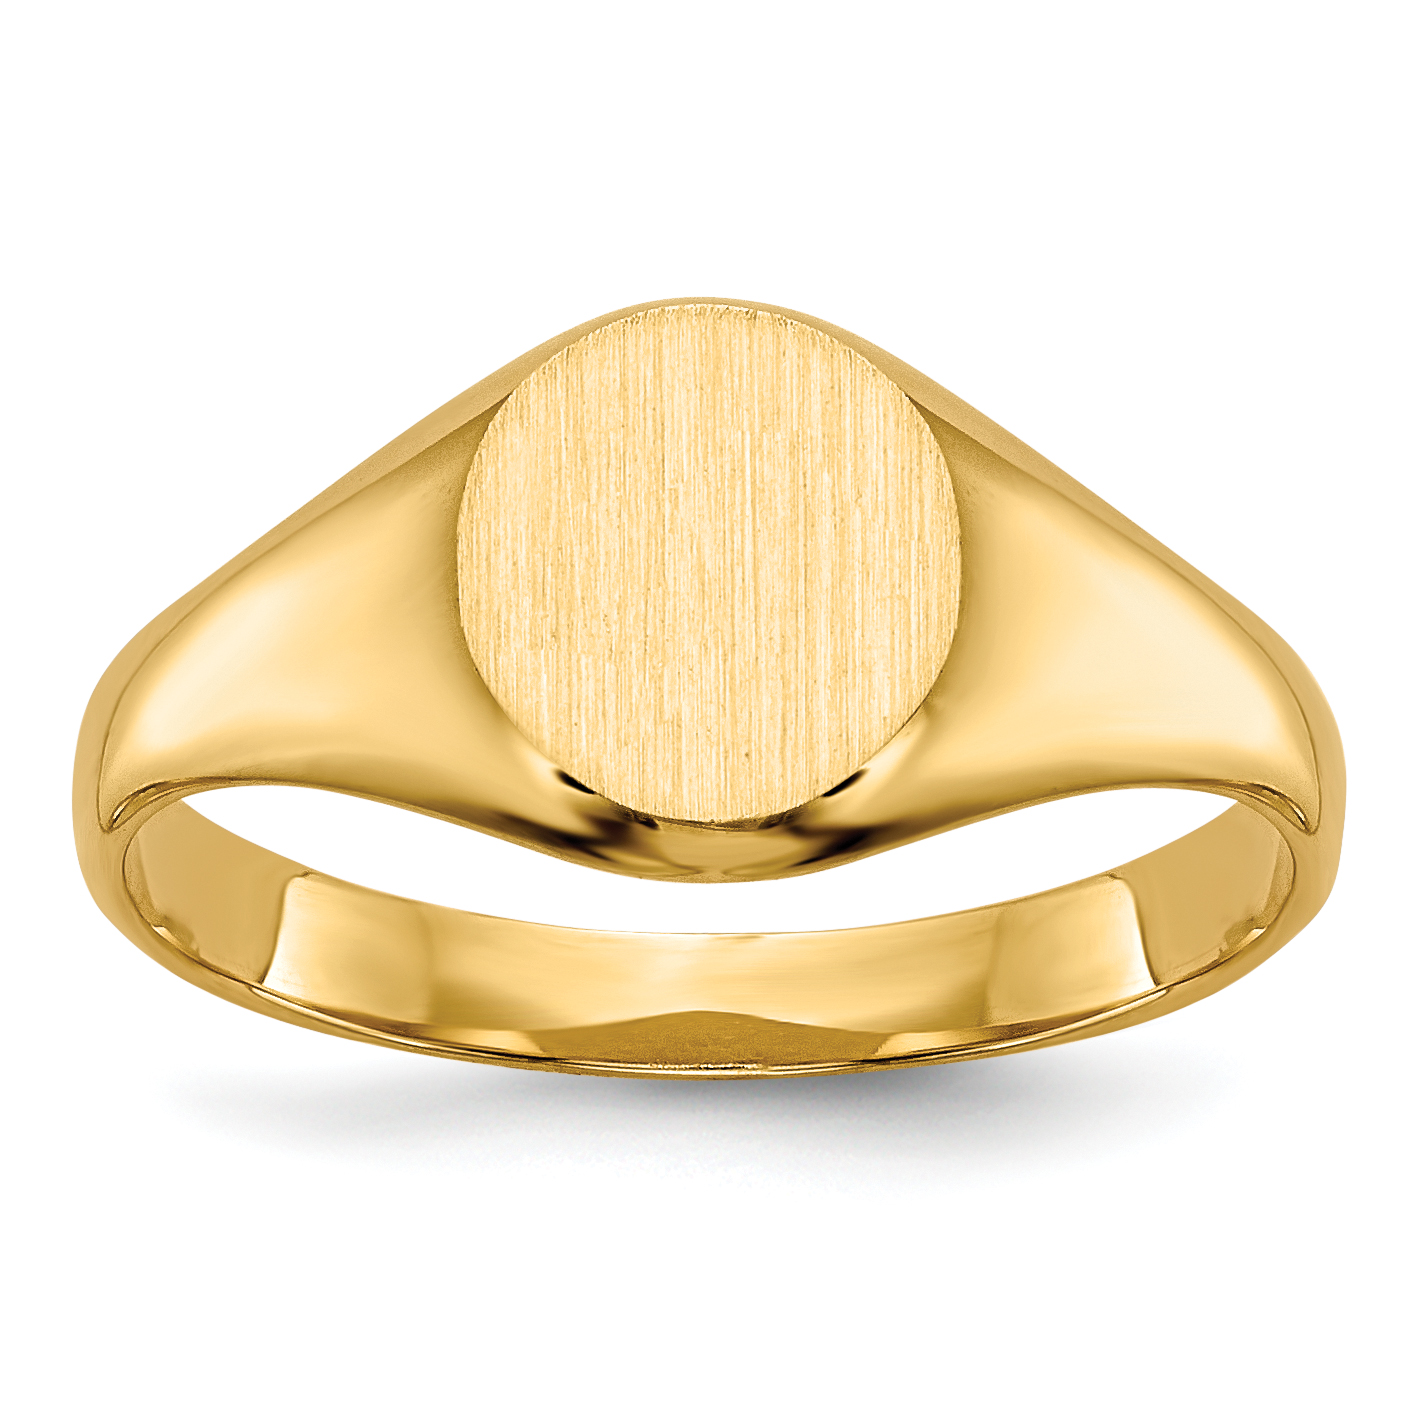 14k Yellow Gold Engravable Childs Signet Ring